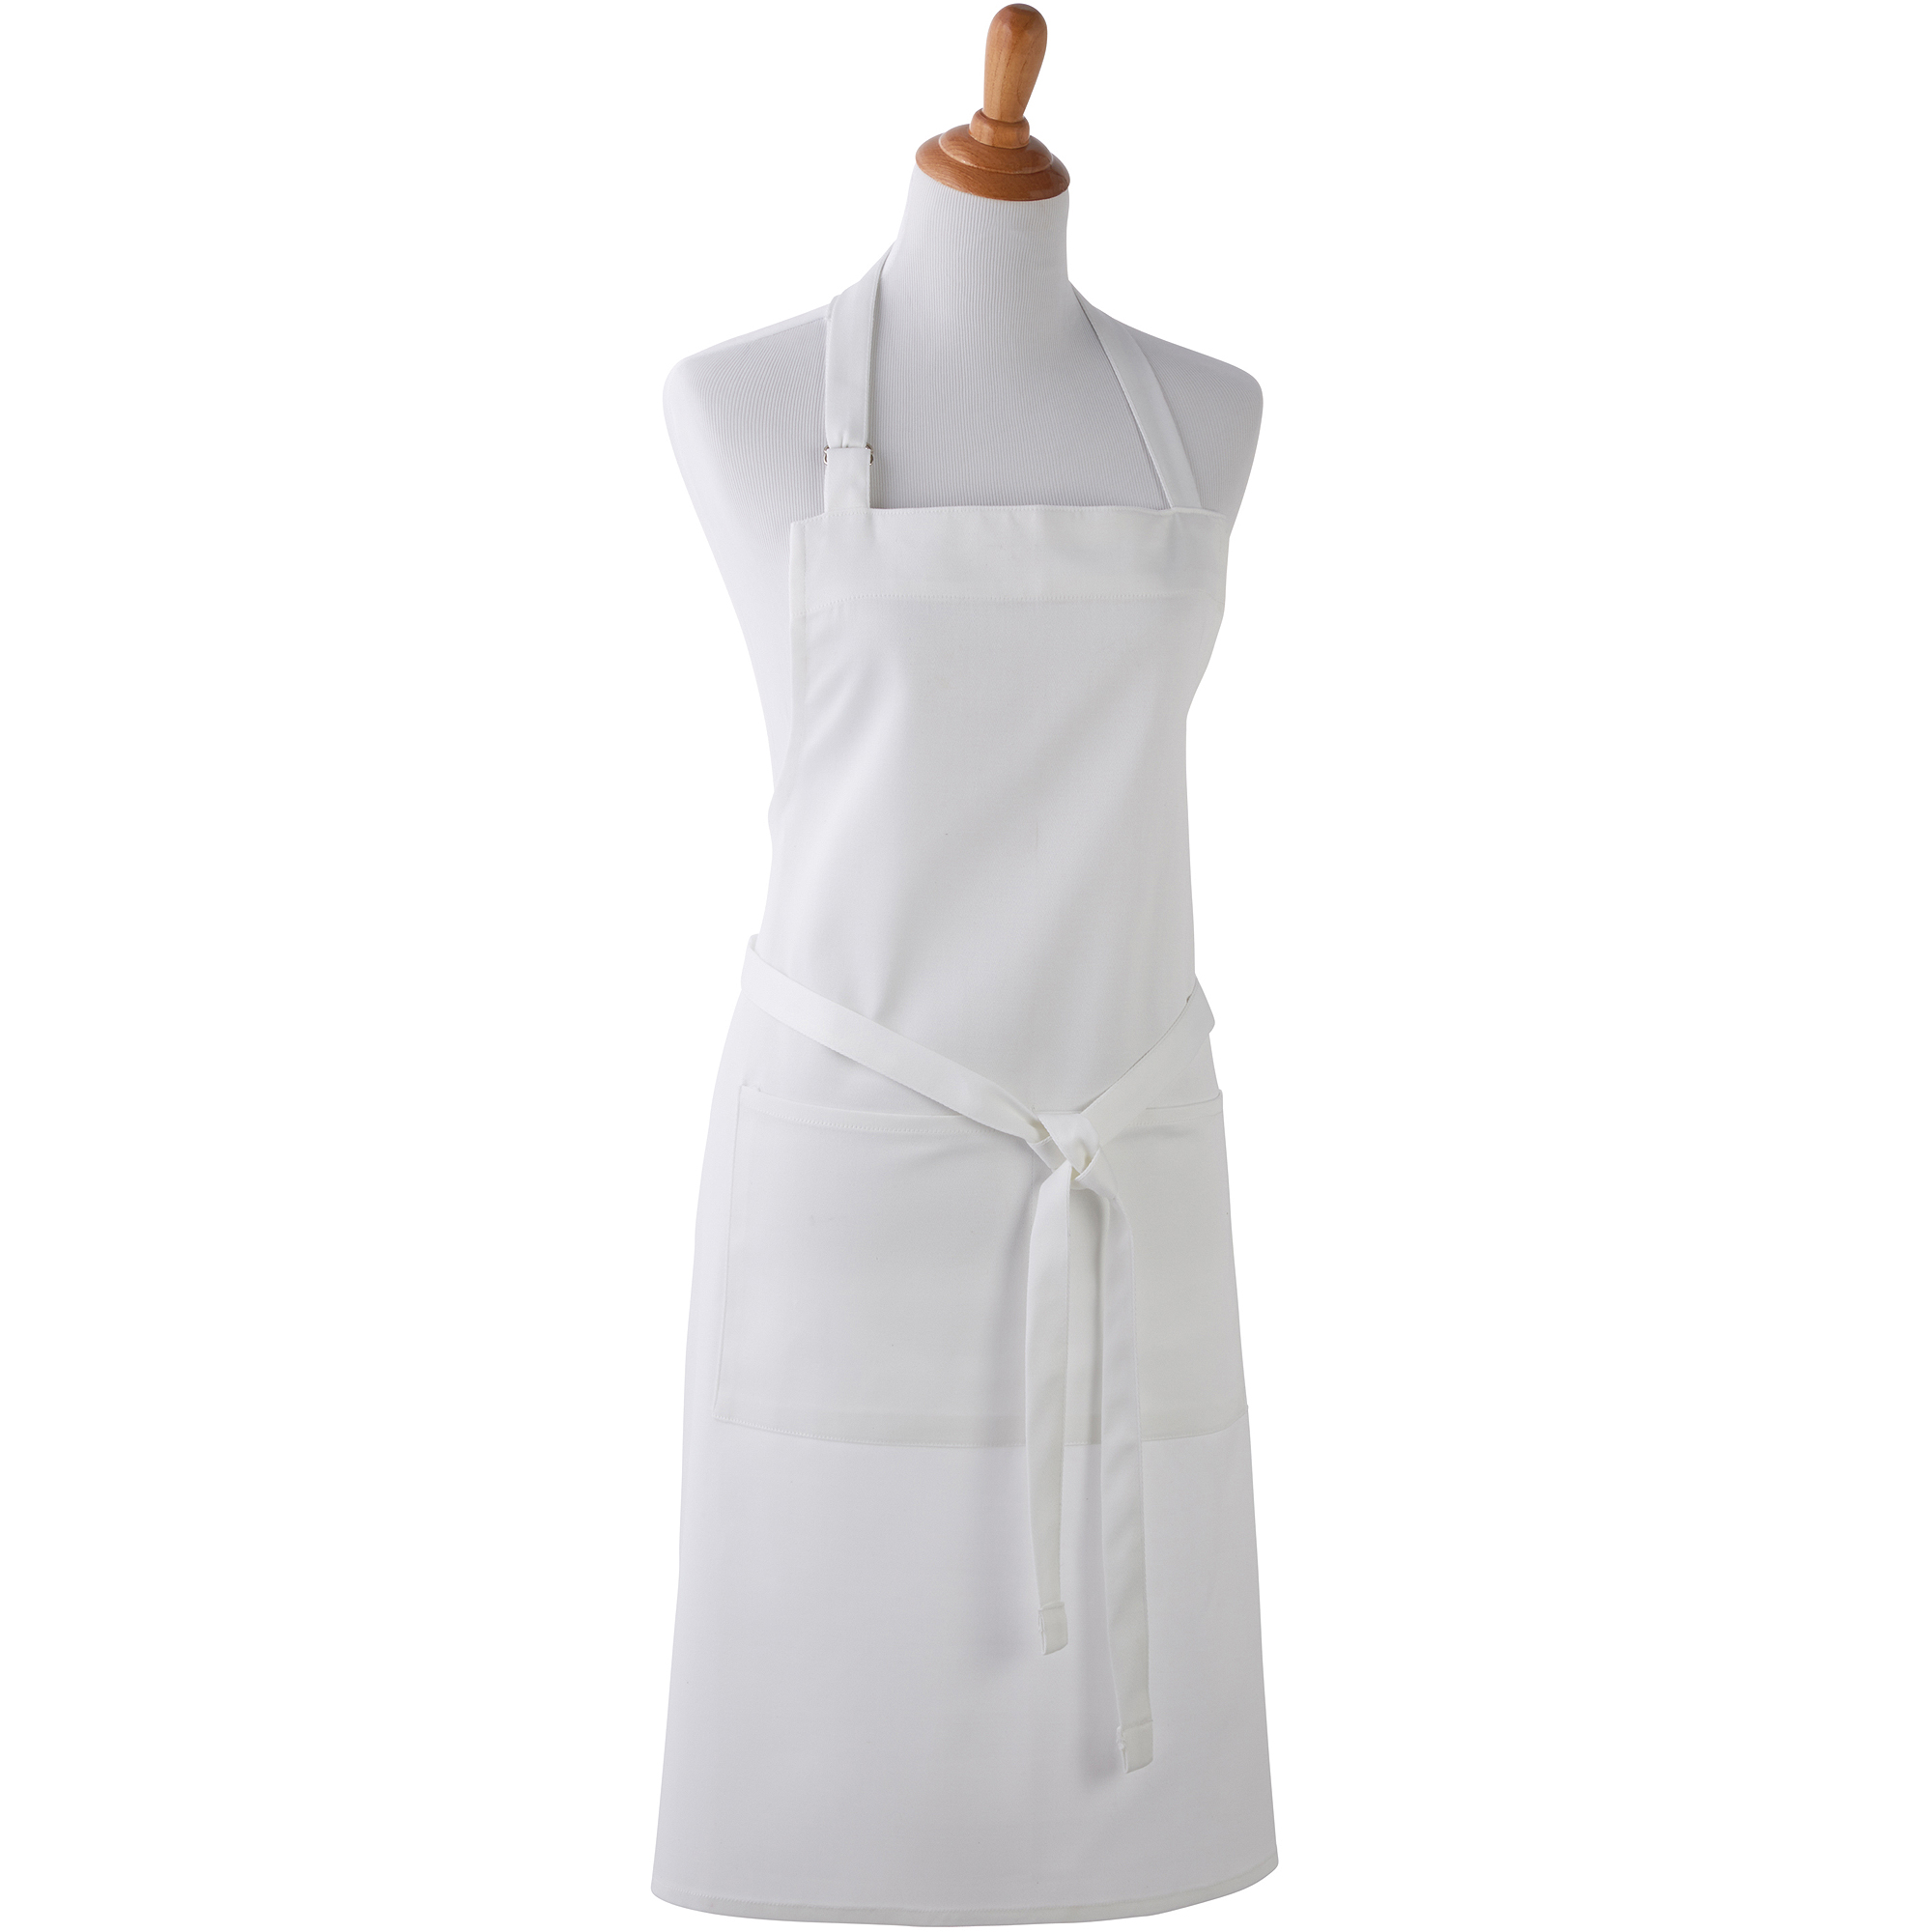 White girly apron